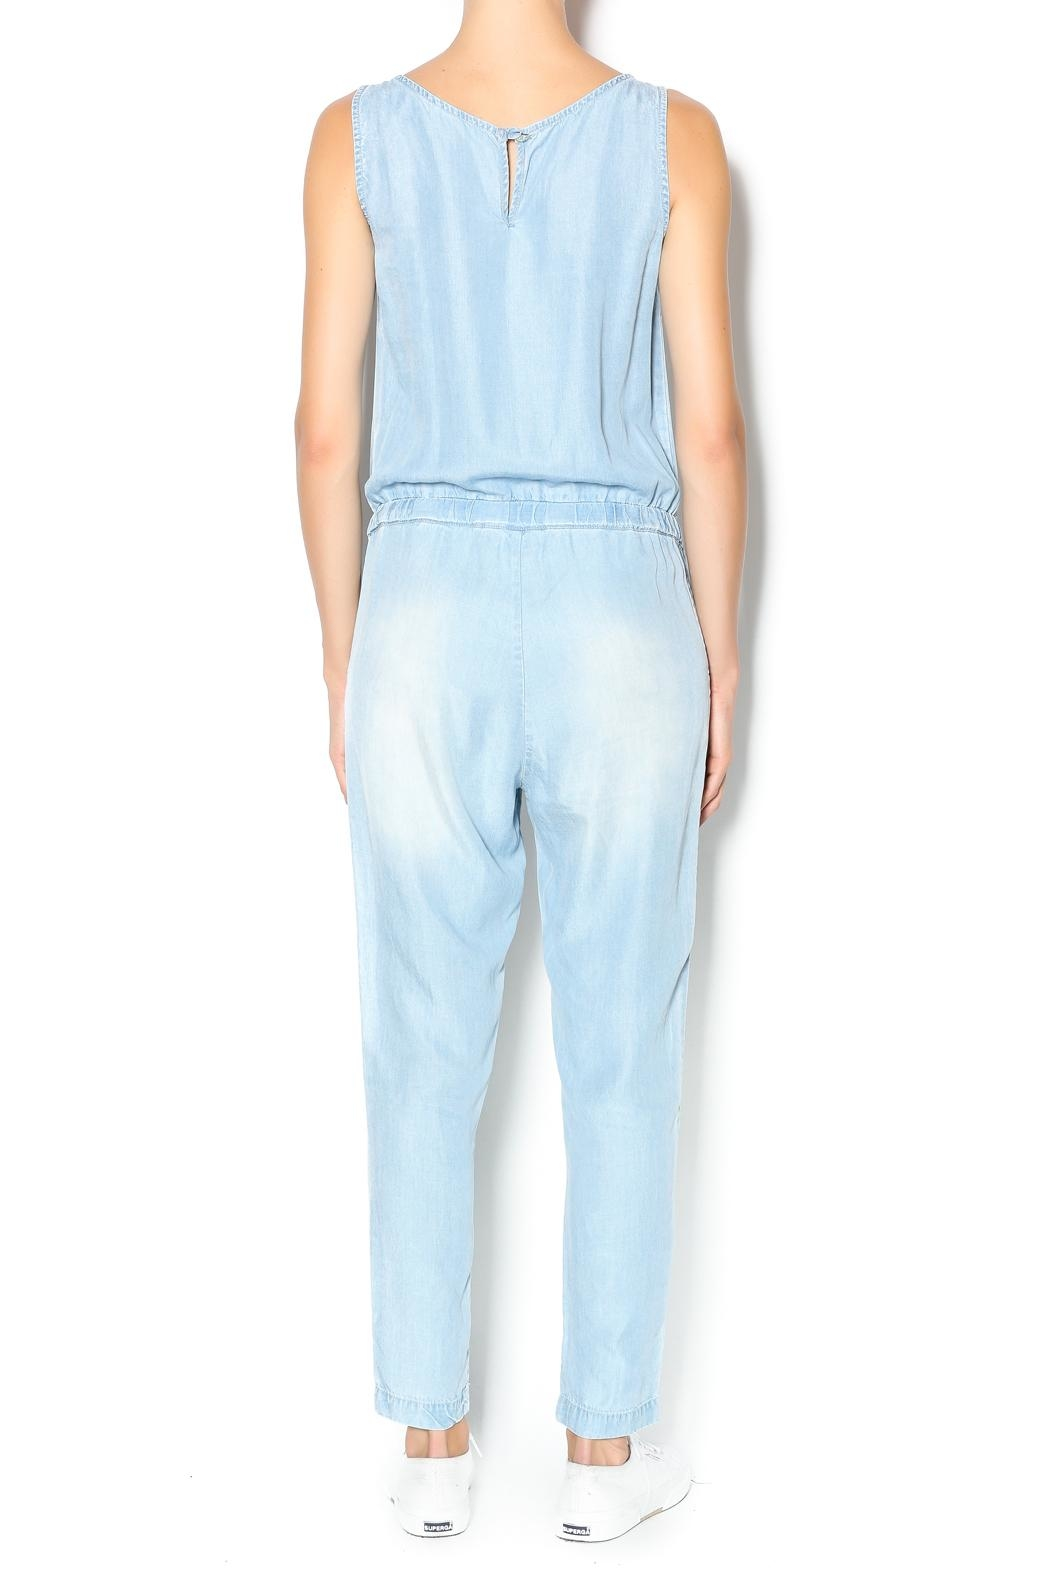 Velvet Heart Denim Jumpsuit - Front Full Image